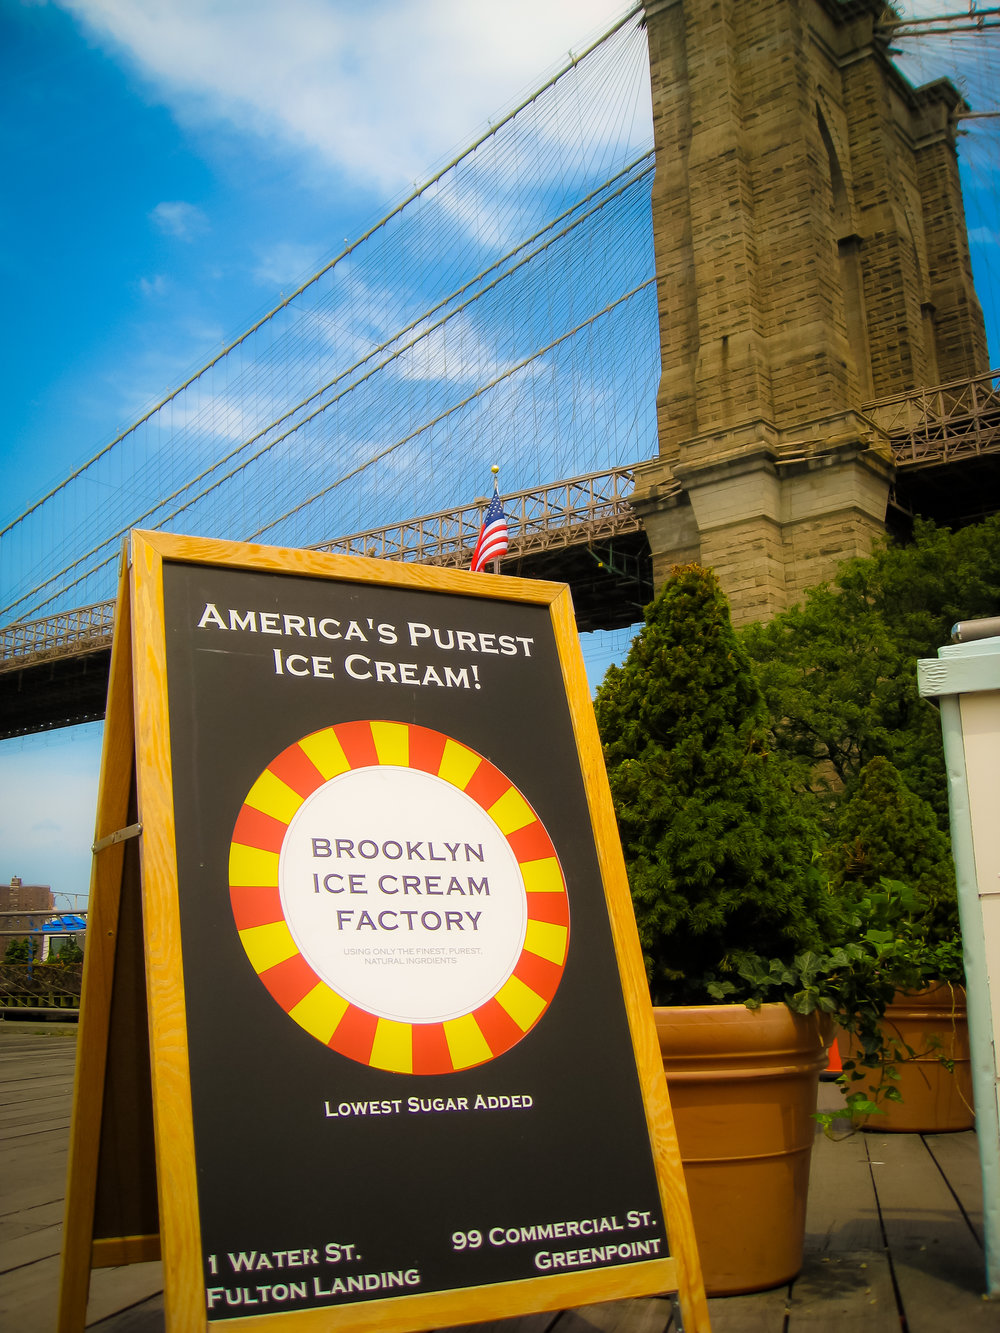 the brooklyn ice cream factory at 1 water street, by the NYC ferry fulton landing in dumbo. Photo: lucas Compan.